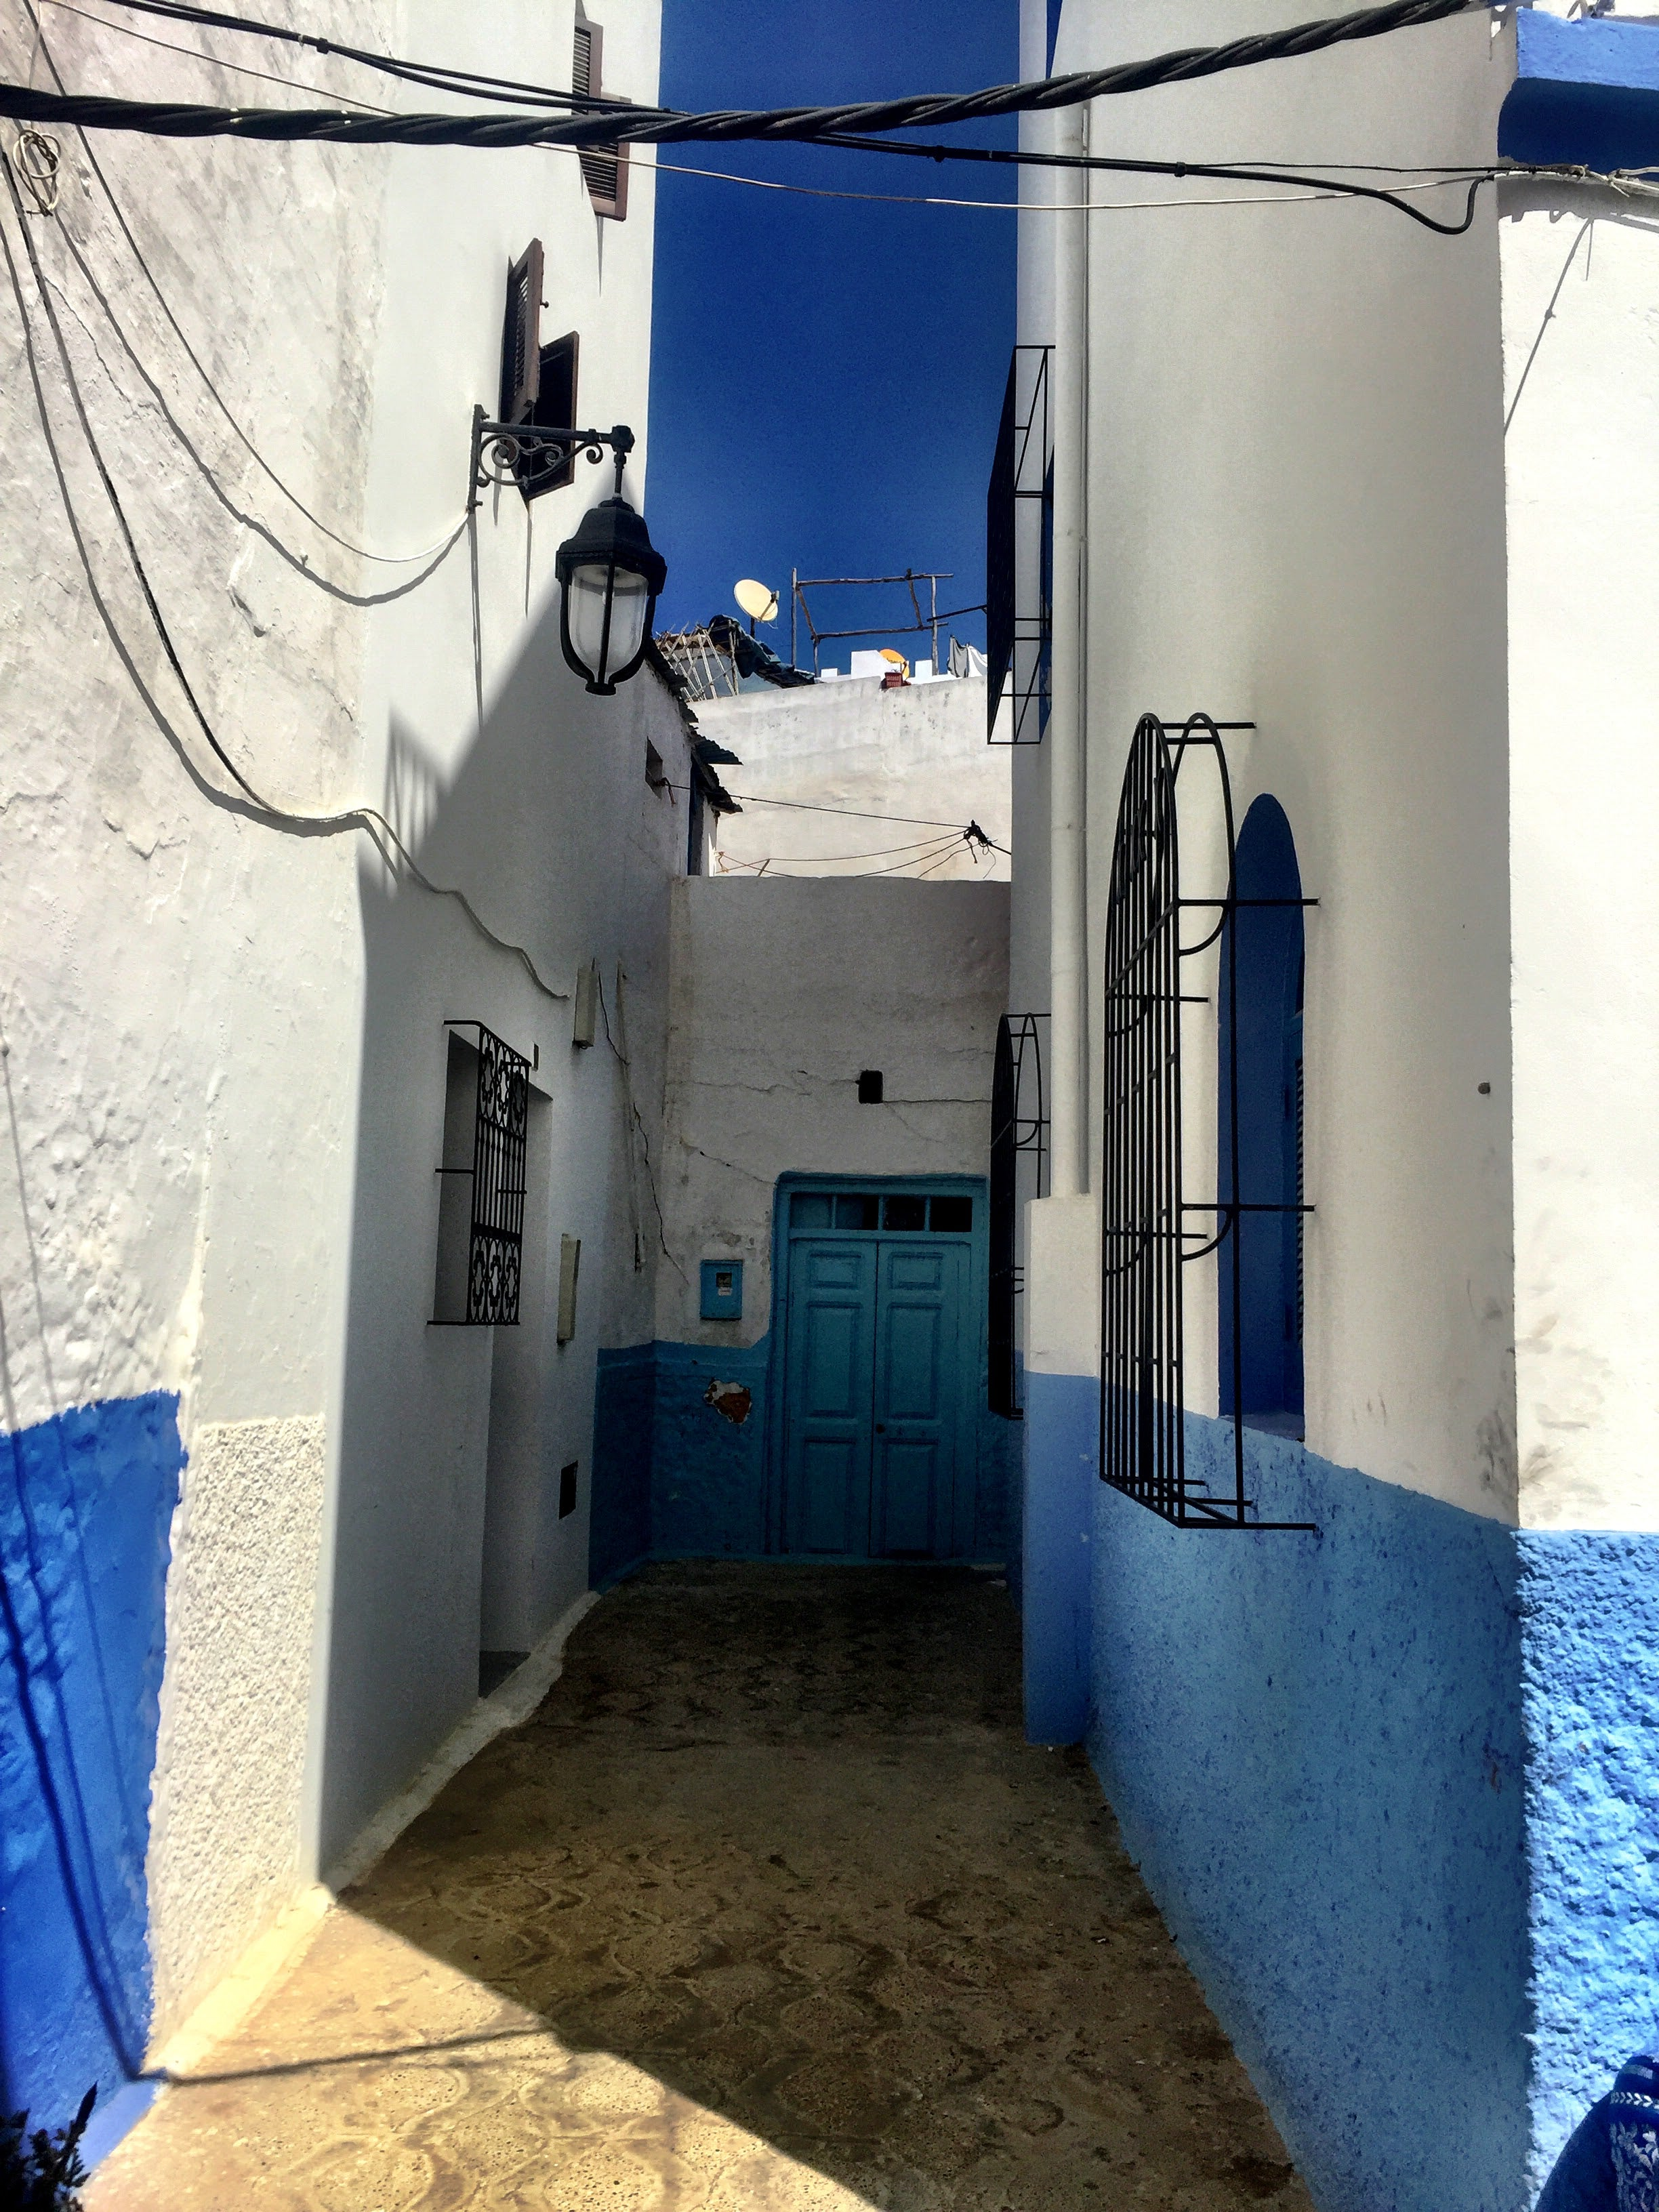 Assilah, a beautiful coastal fishing town in Morocco awash will bright blue hues